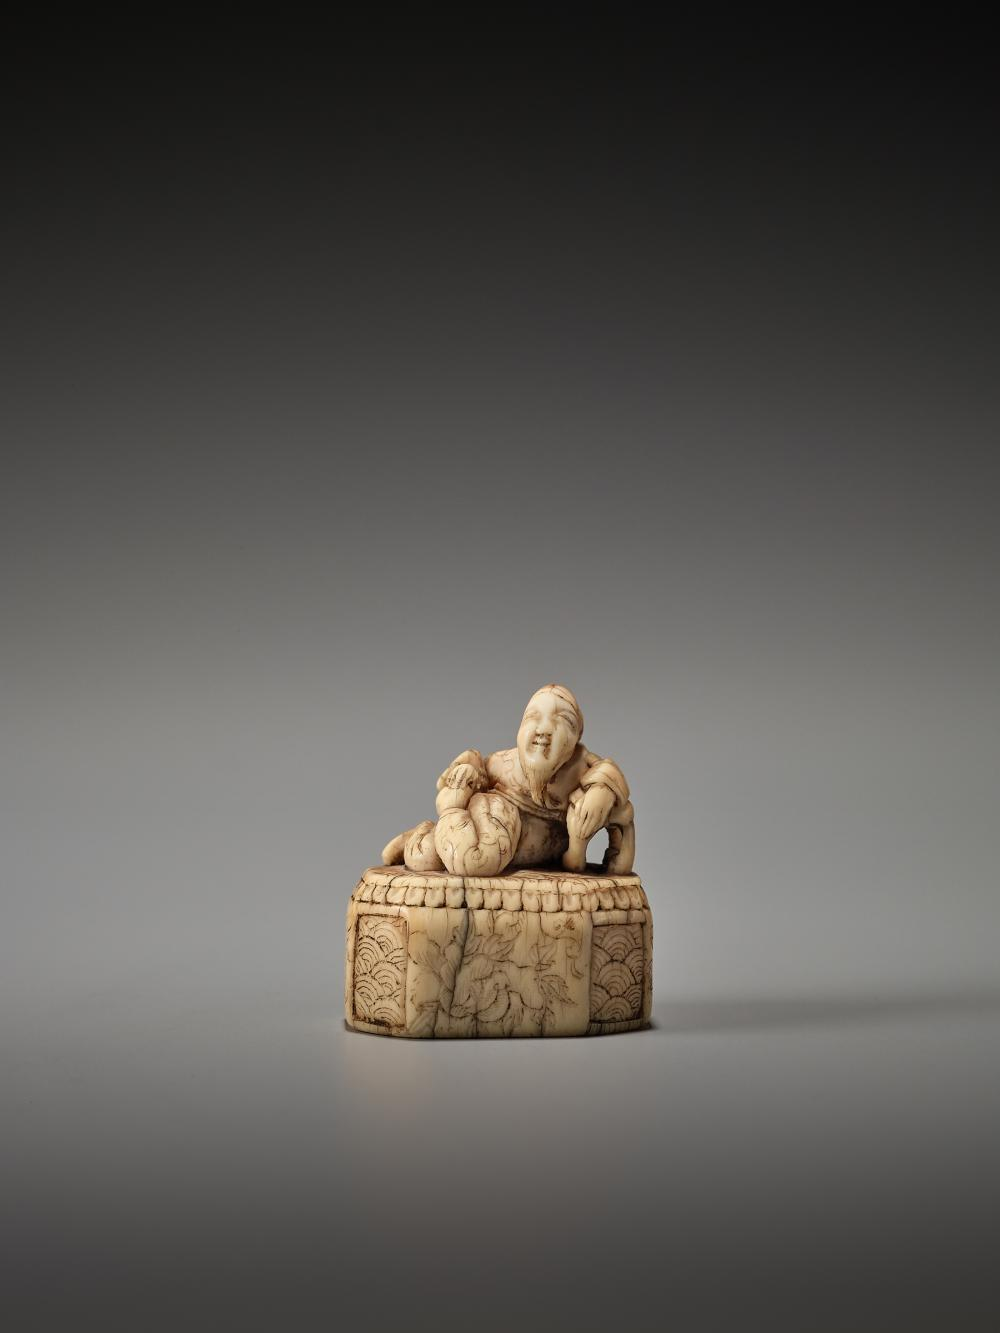 AN EARLY IVORY NETSUKE DEPICTING A CHINESE SAGE ON A DECORATED BASE